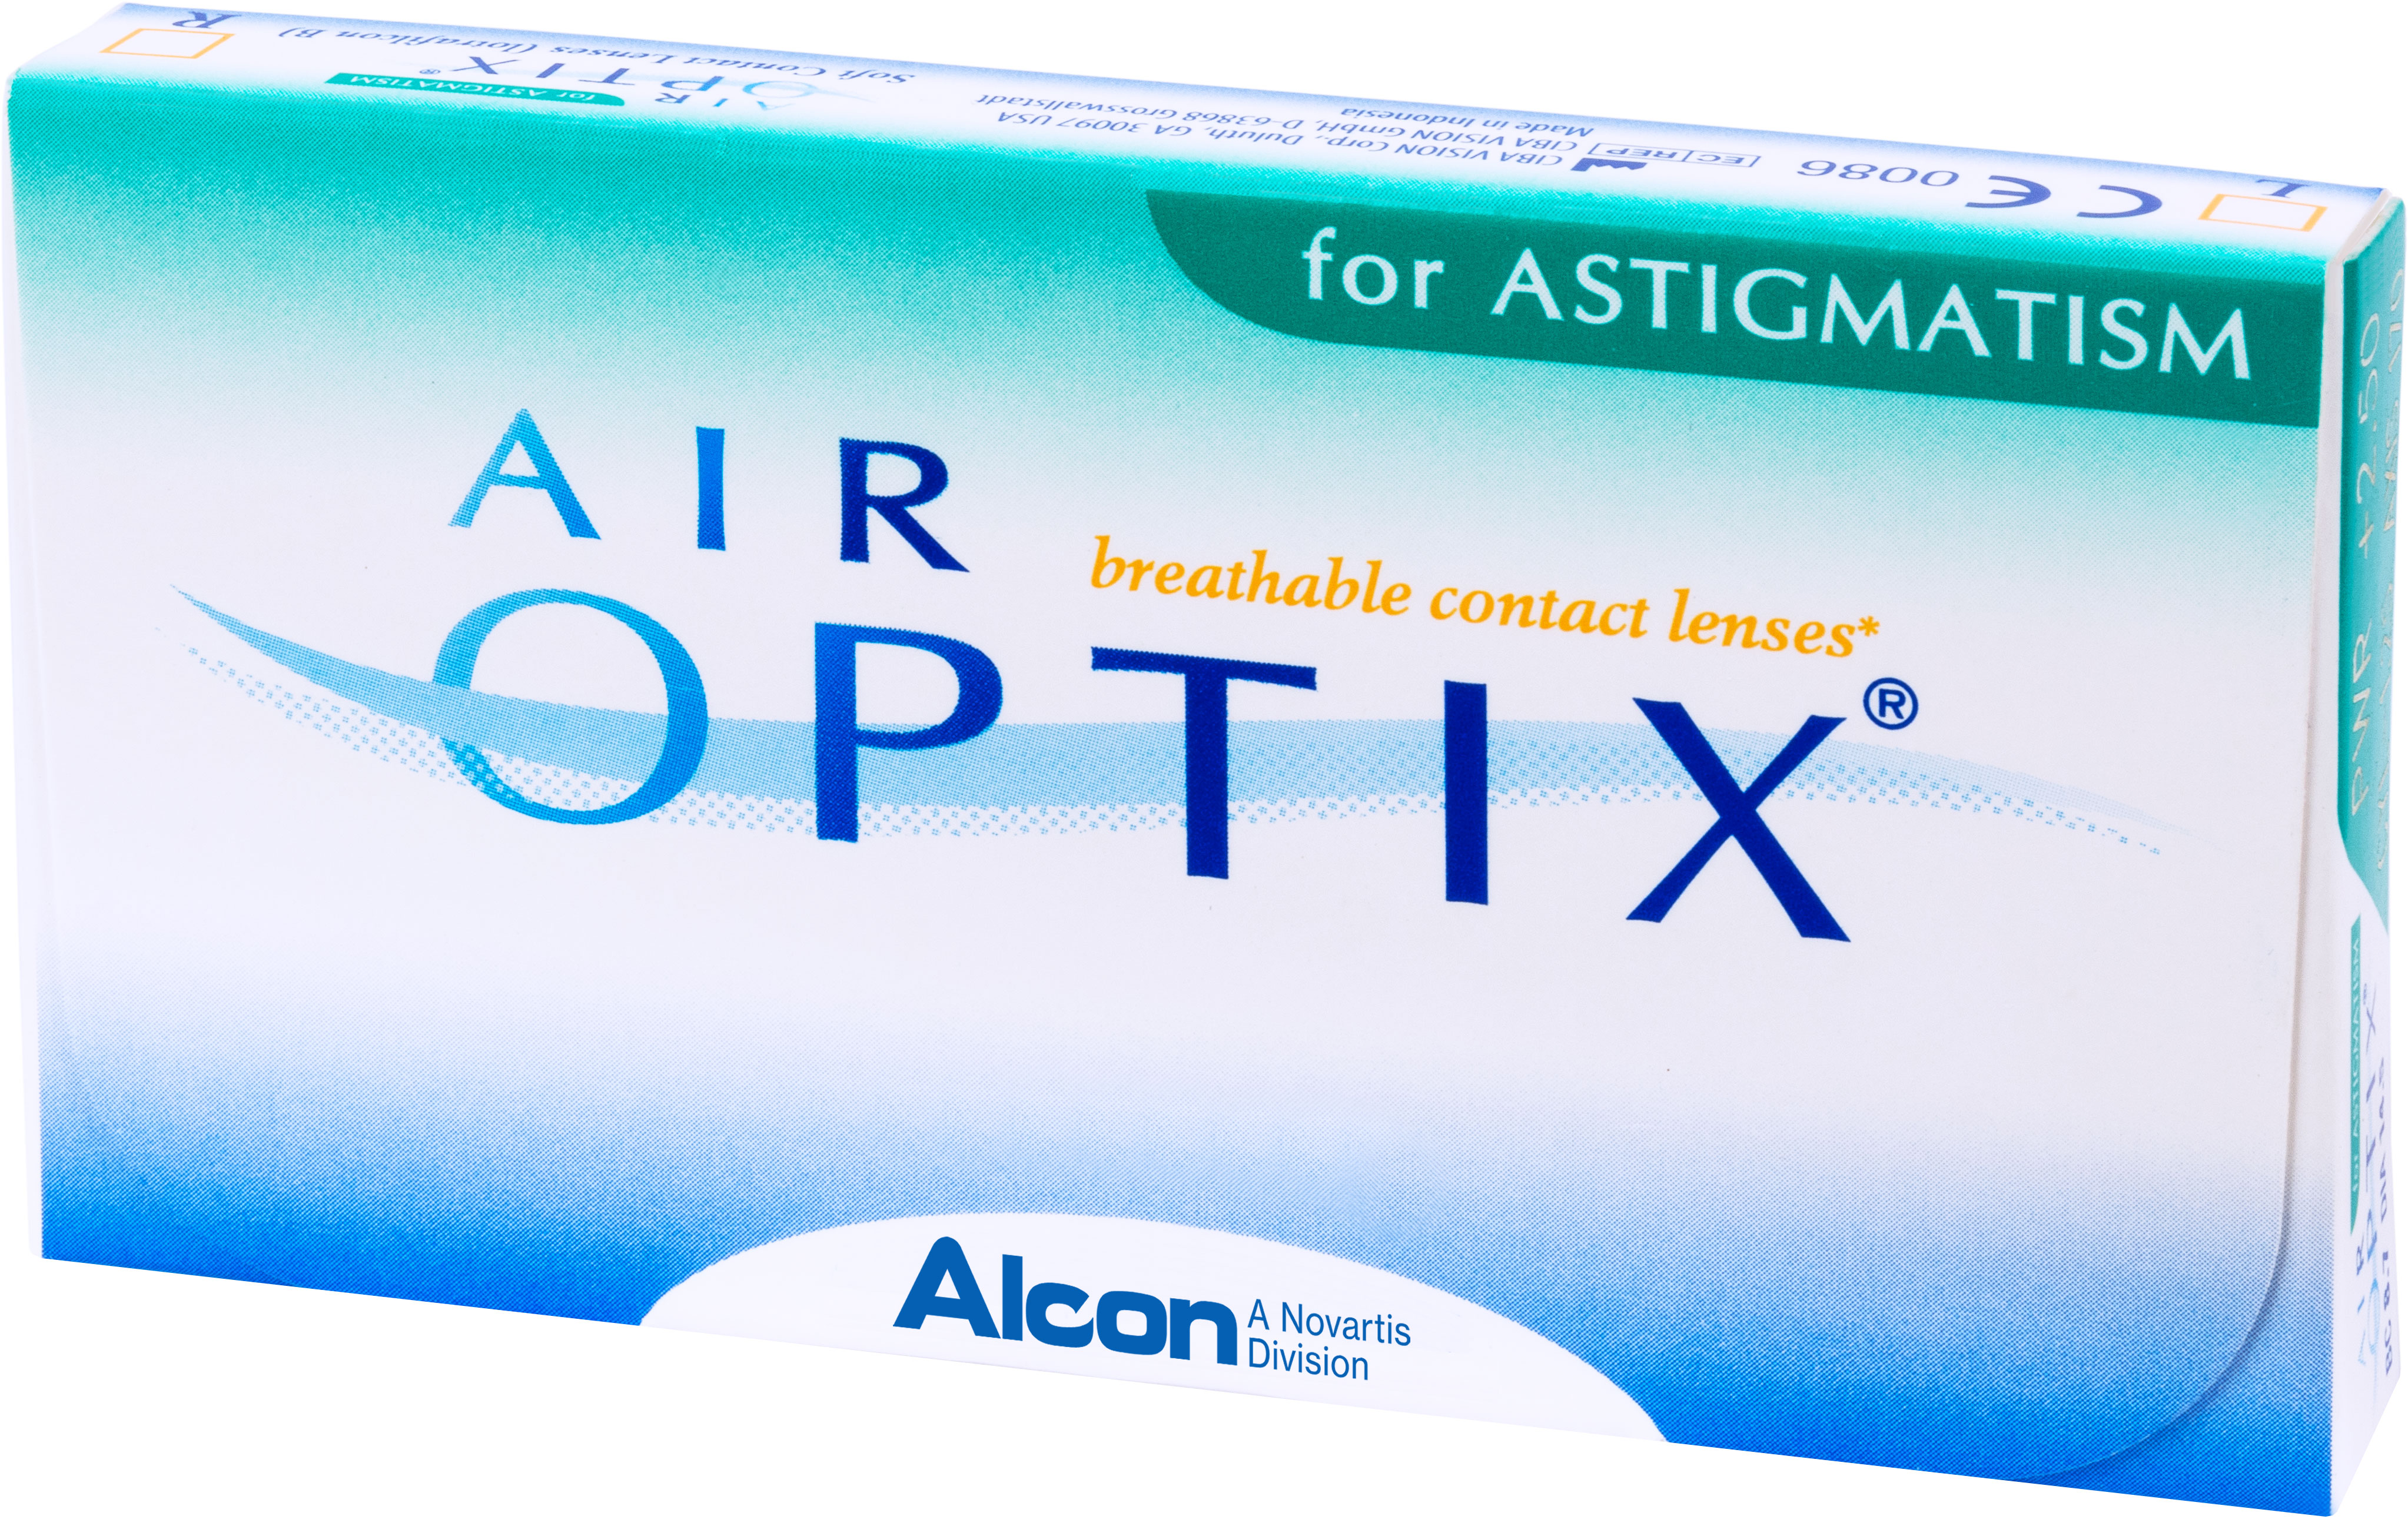 Аlcon контактные линзы Air Optix for Astigmatism 3pk /BC 8.7/DIA14.5/PWR -6.50/CYL -1.25/AXIS 120100049460with Hydraclear